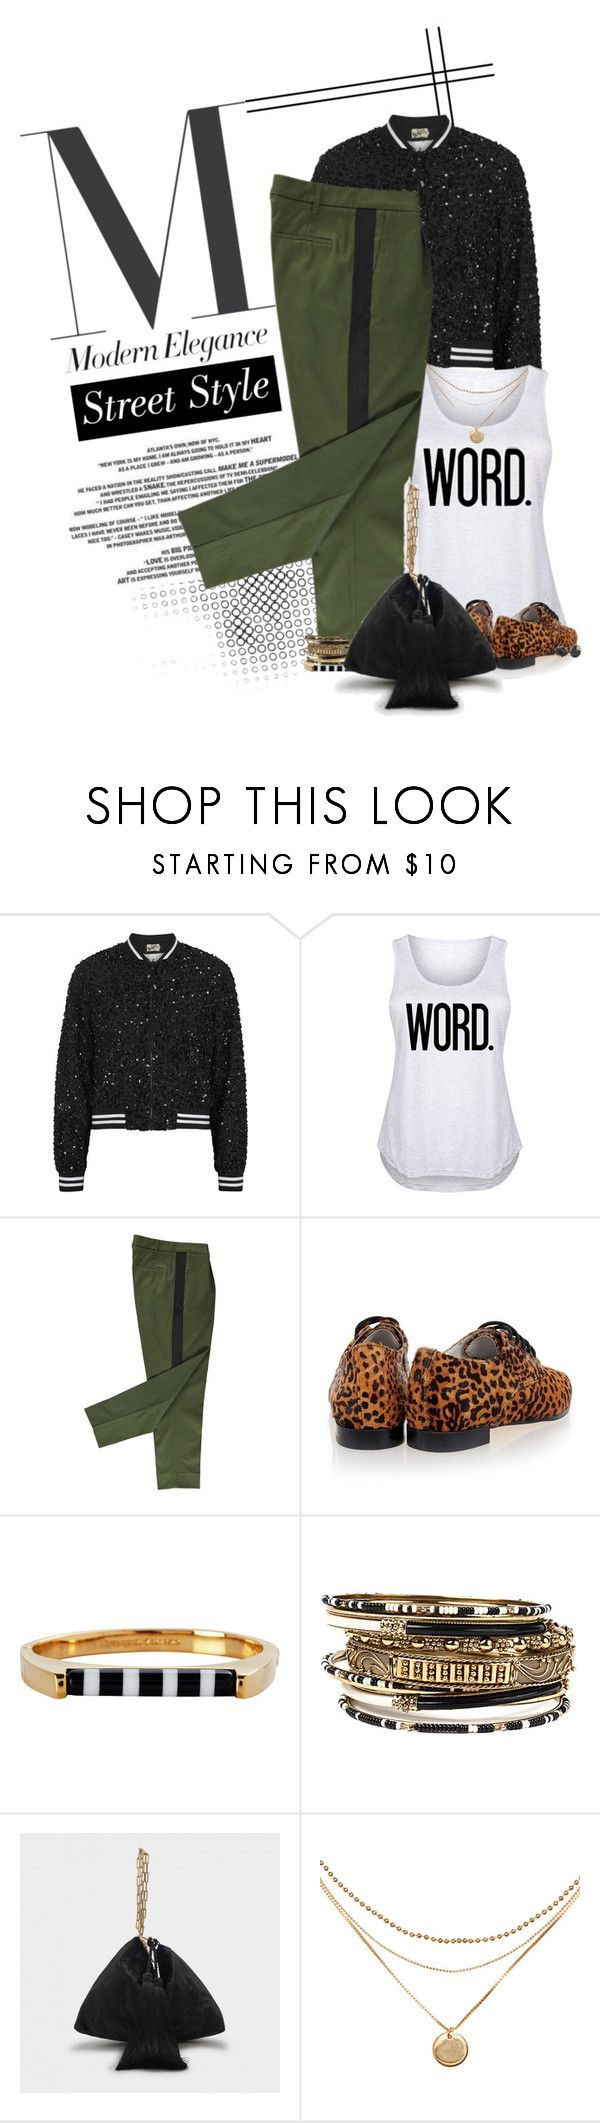 """""""Modern Elegance: Street Style"""" by dawn-scott ❤ liked on Polyvore featuring Alice + Olivia, LC Trendz, Senso, Kate Spade, Amrita Singh, Dara Ettinger, modern and plus size clothing"""